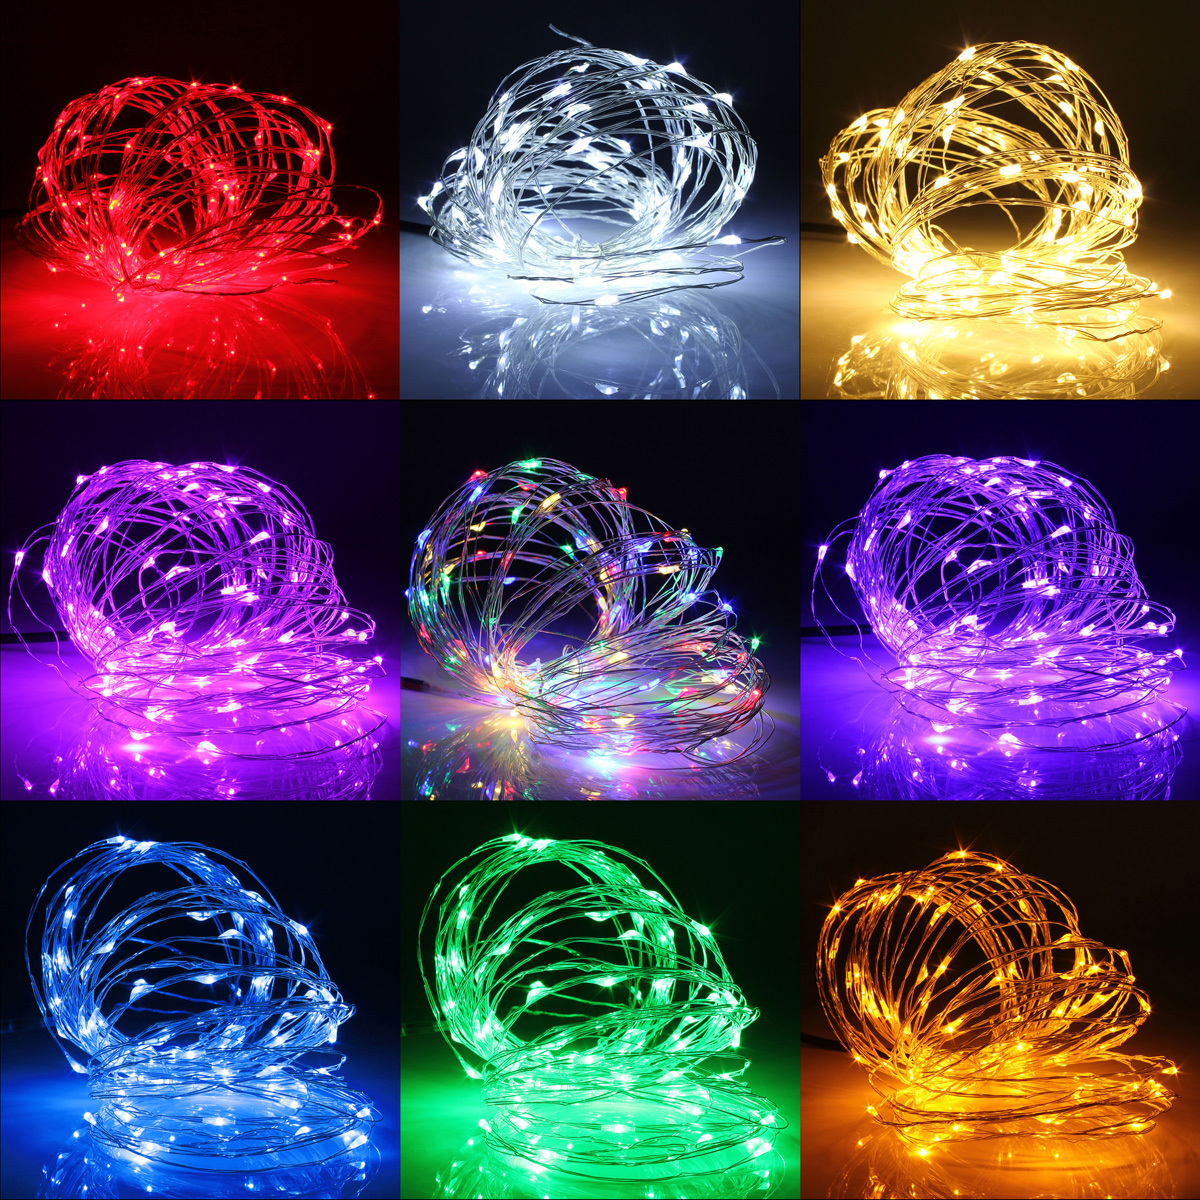 String Lights Clearance : 5/10X 5M 12V LED Silver Copper Wire Fairy String Light Xmas Party Clearance Sale eBay